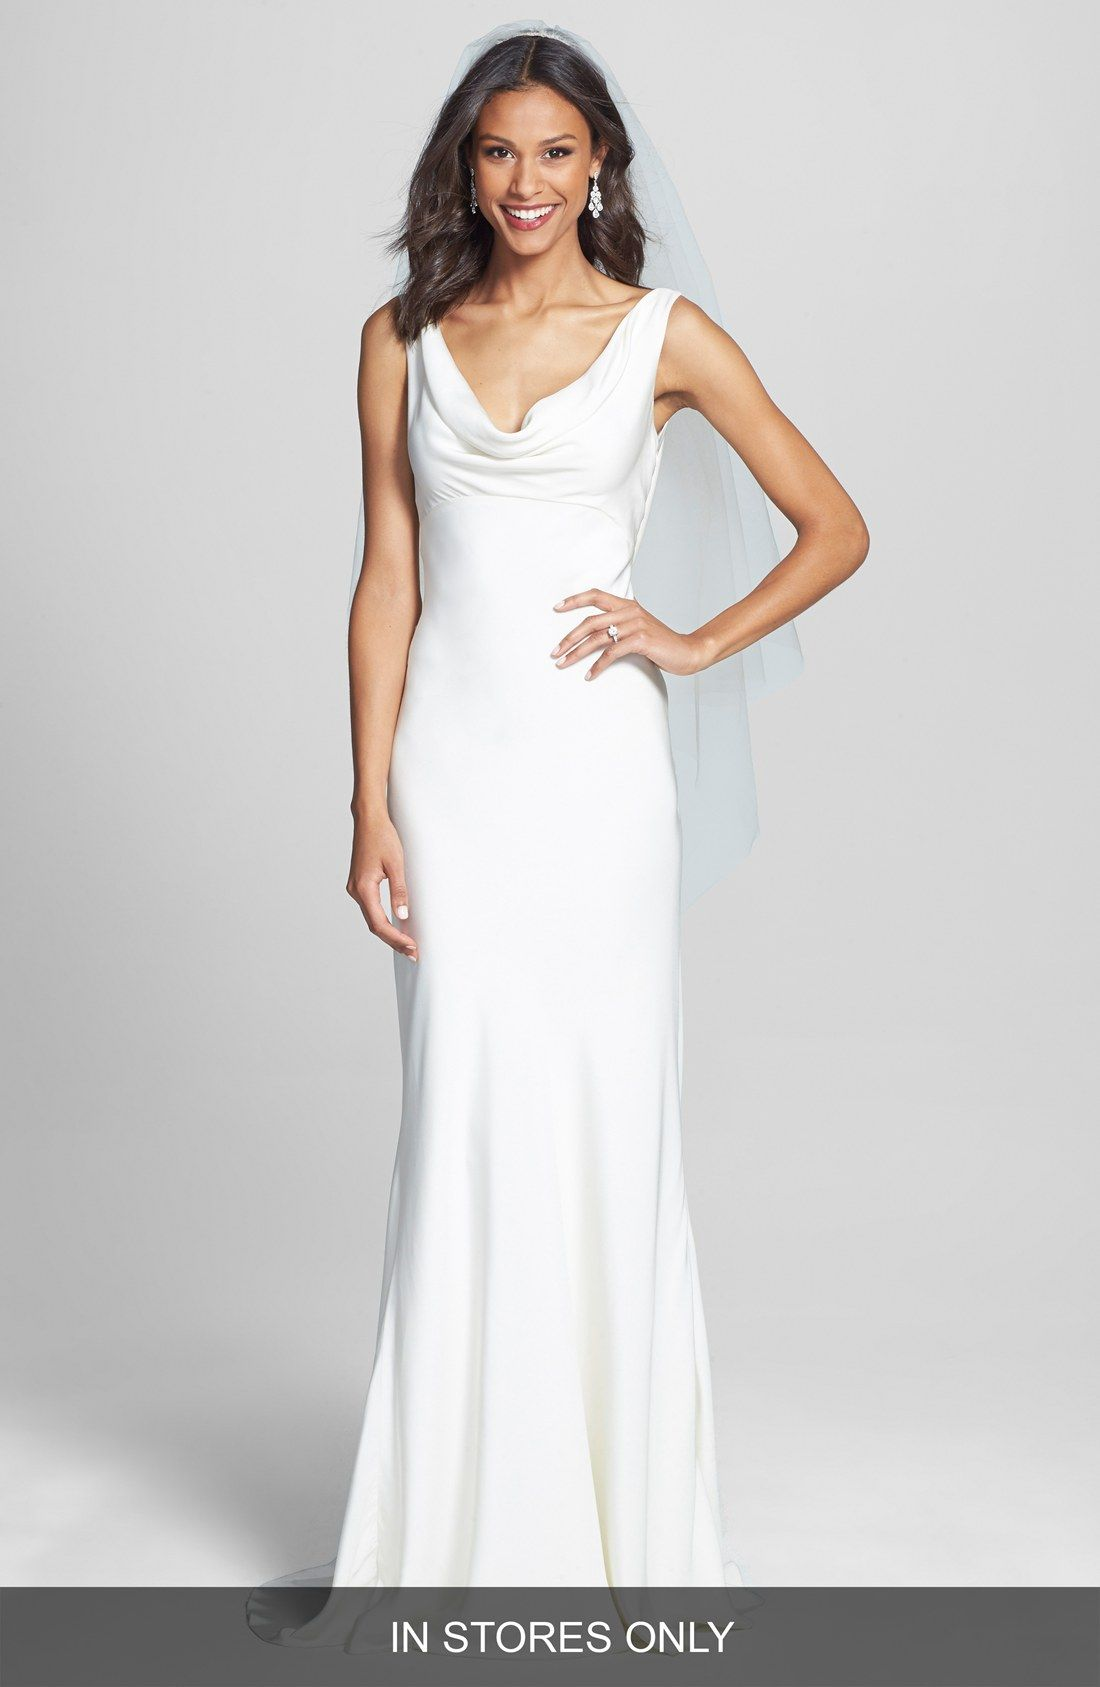 BLISS Monique Lhuillier Draped Neck Silk Crepe Wedding Dress In Stores Only